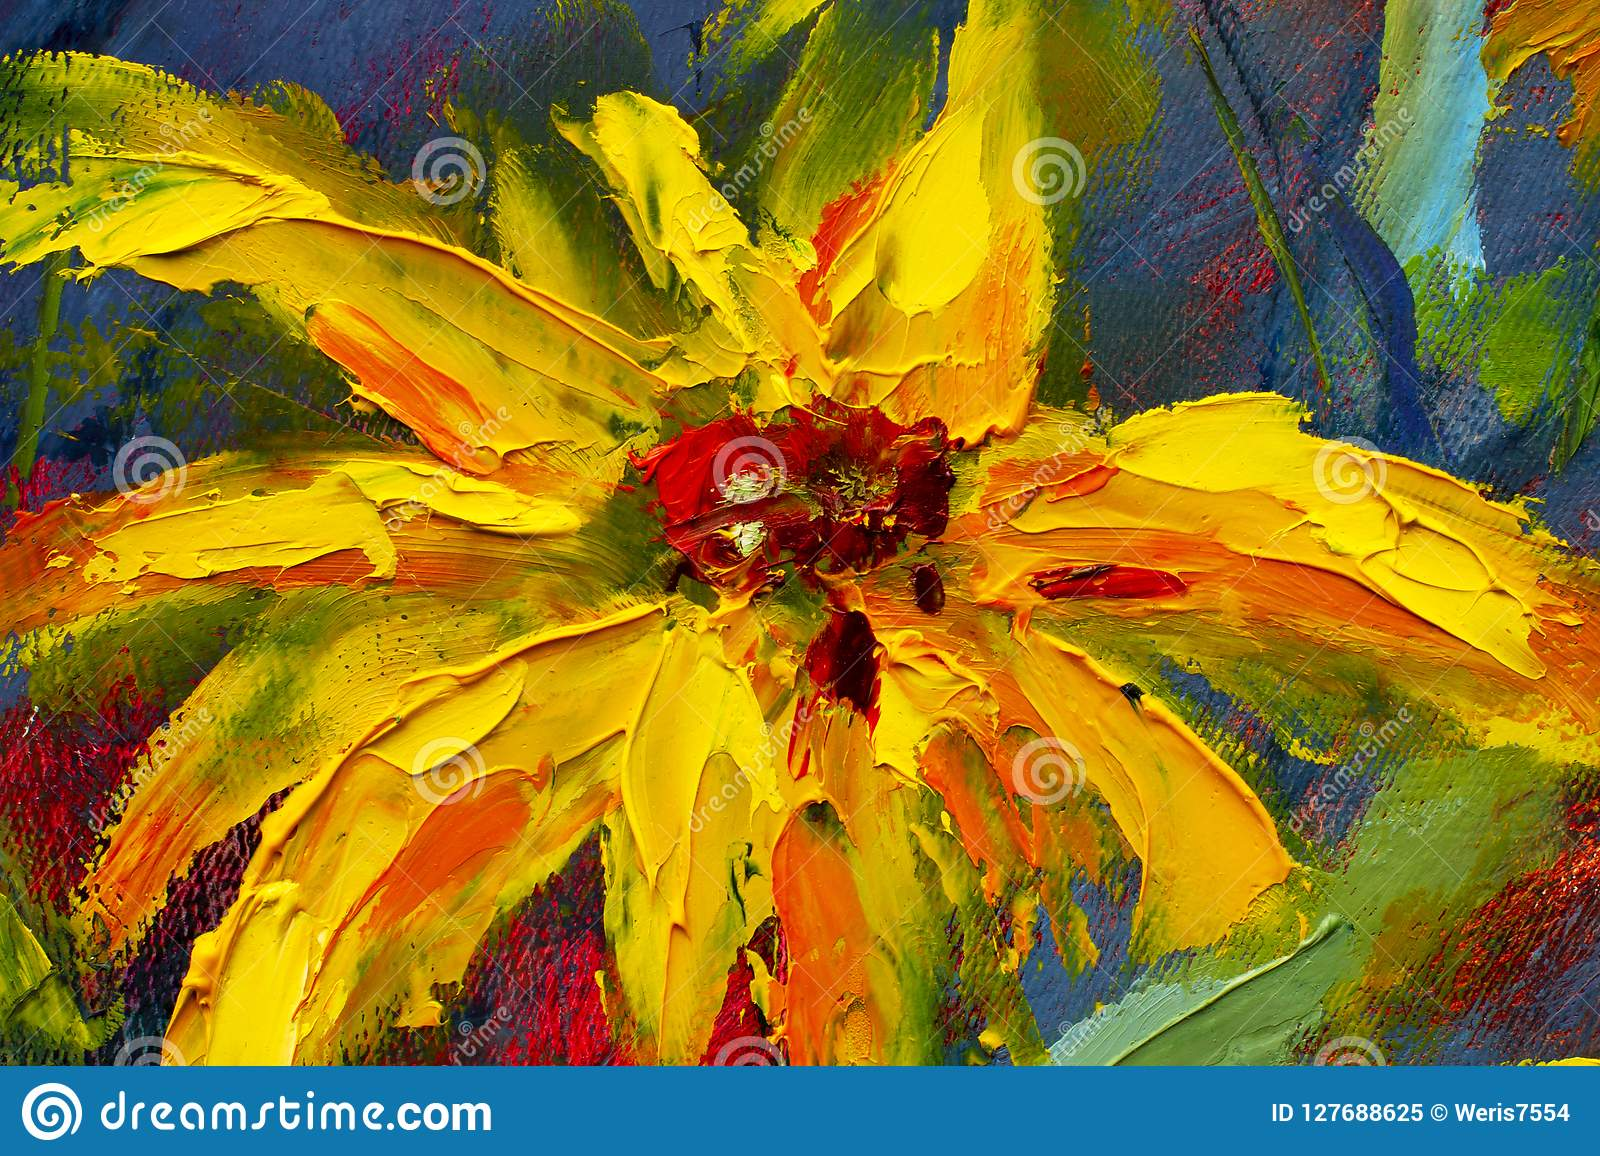 Flowers painting, yellow wild flowers daisies, orange sunflowers on a blue background, oil paintings landscape impressionism artwo